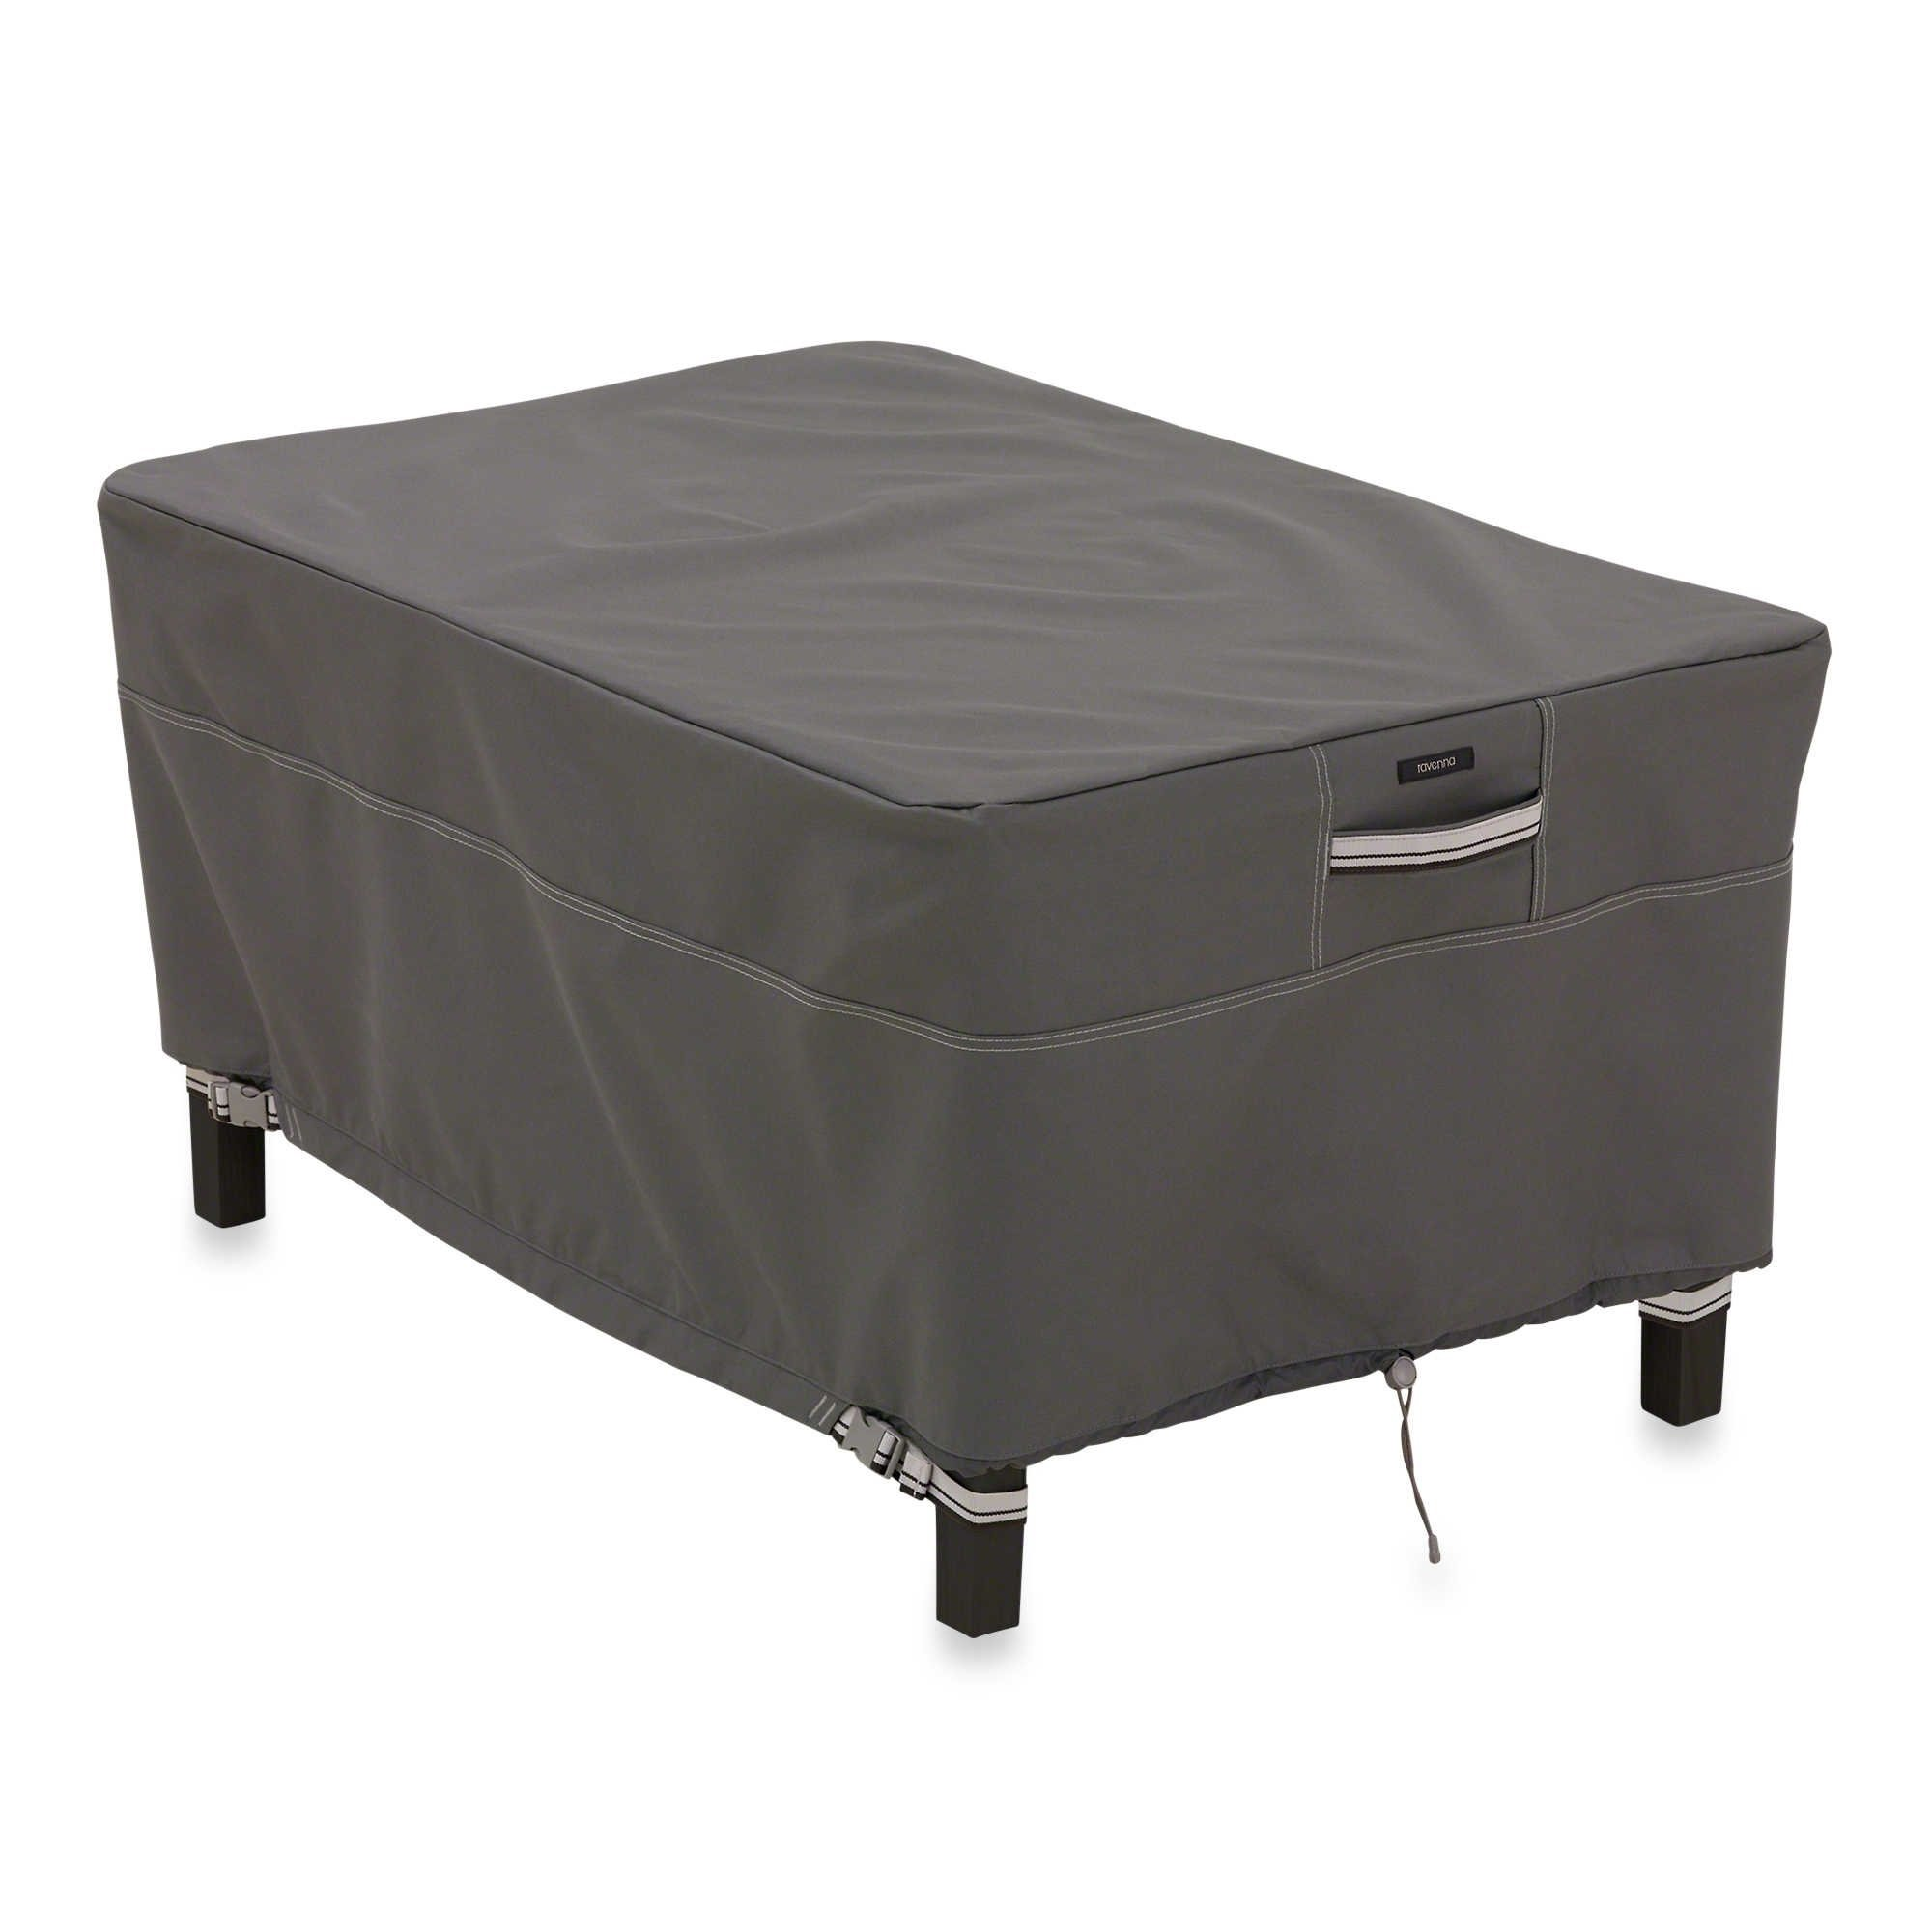 Classic Accessories 55-166-025101-00 Side Table Cover